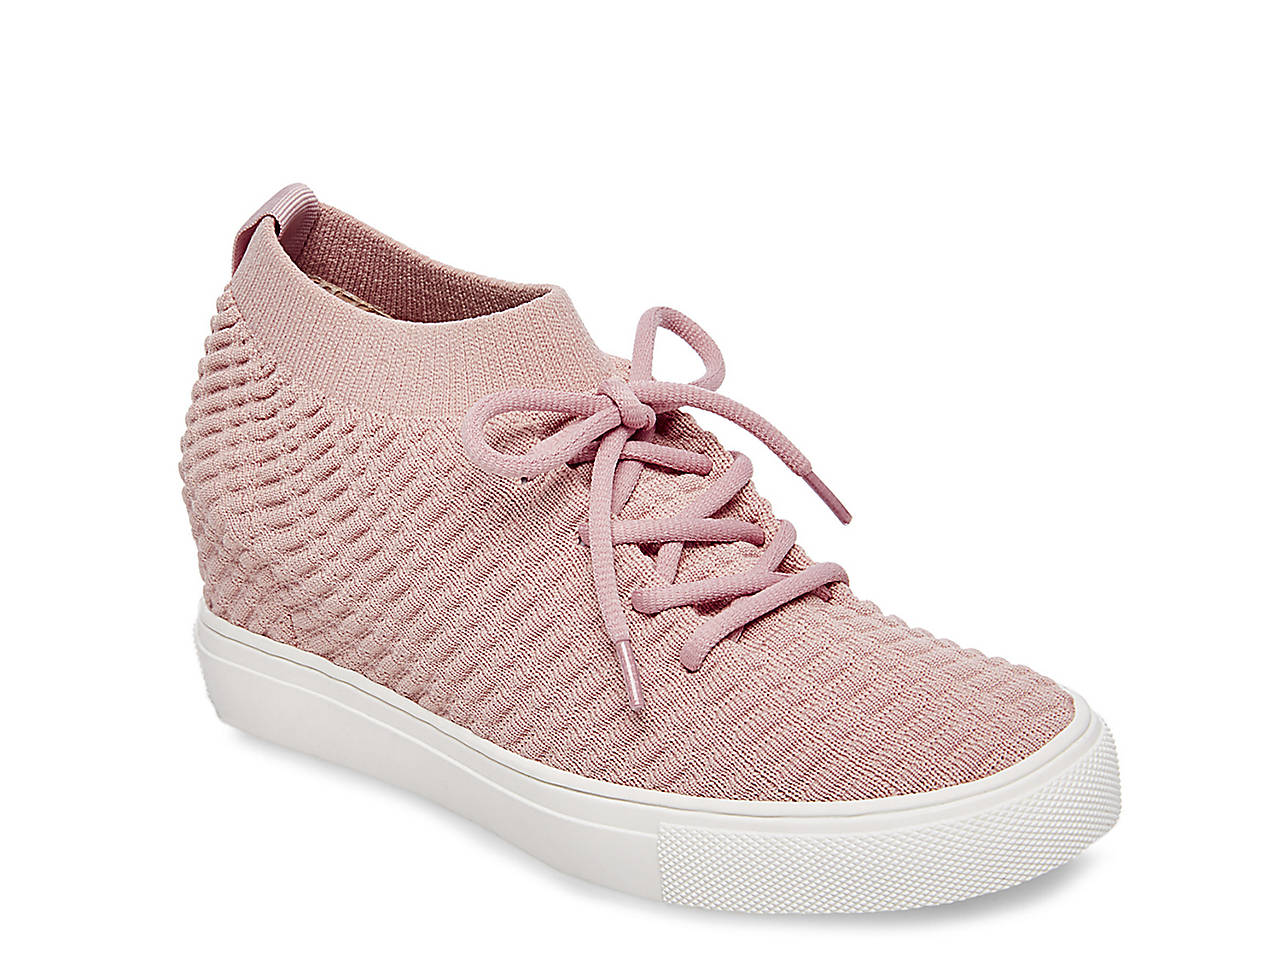 54e6d8f81eb Steven by Steve Madden Carin Wedge Sneaker Women s Shoes